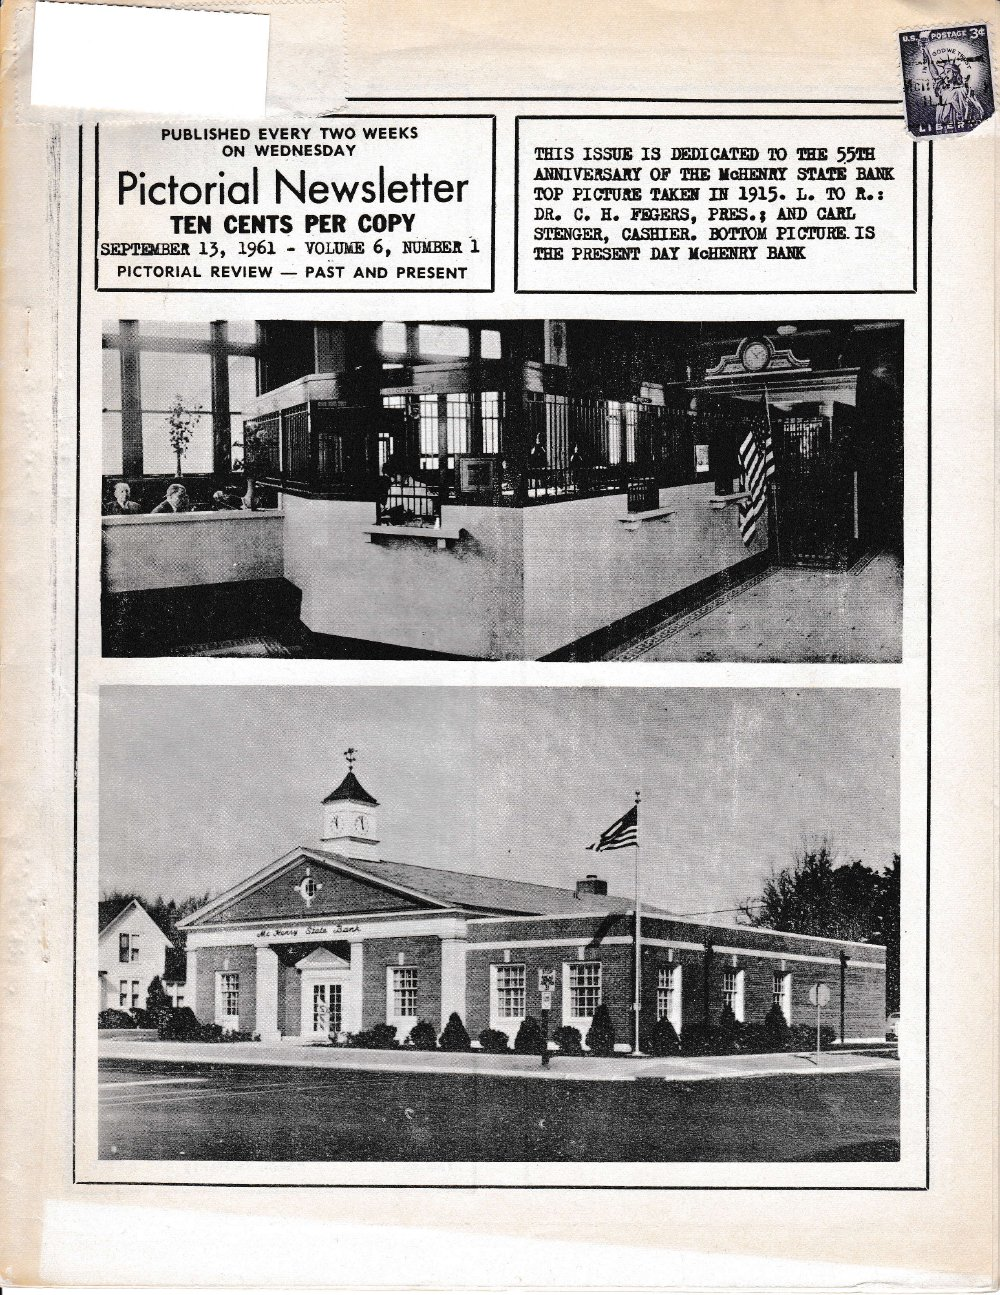 The Pictorial Newsletter: September 13, 1961